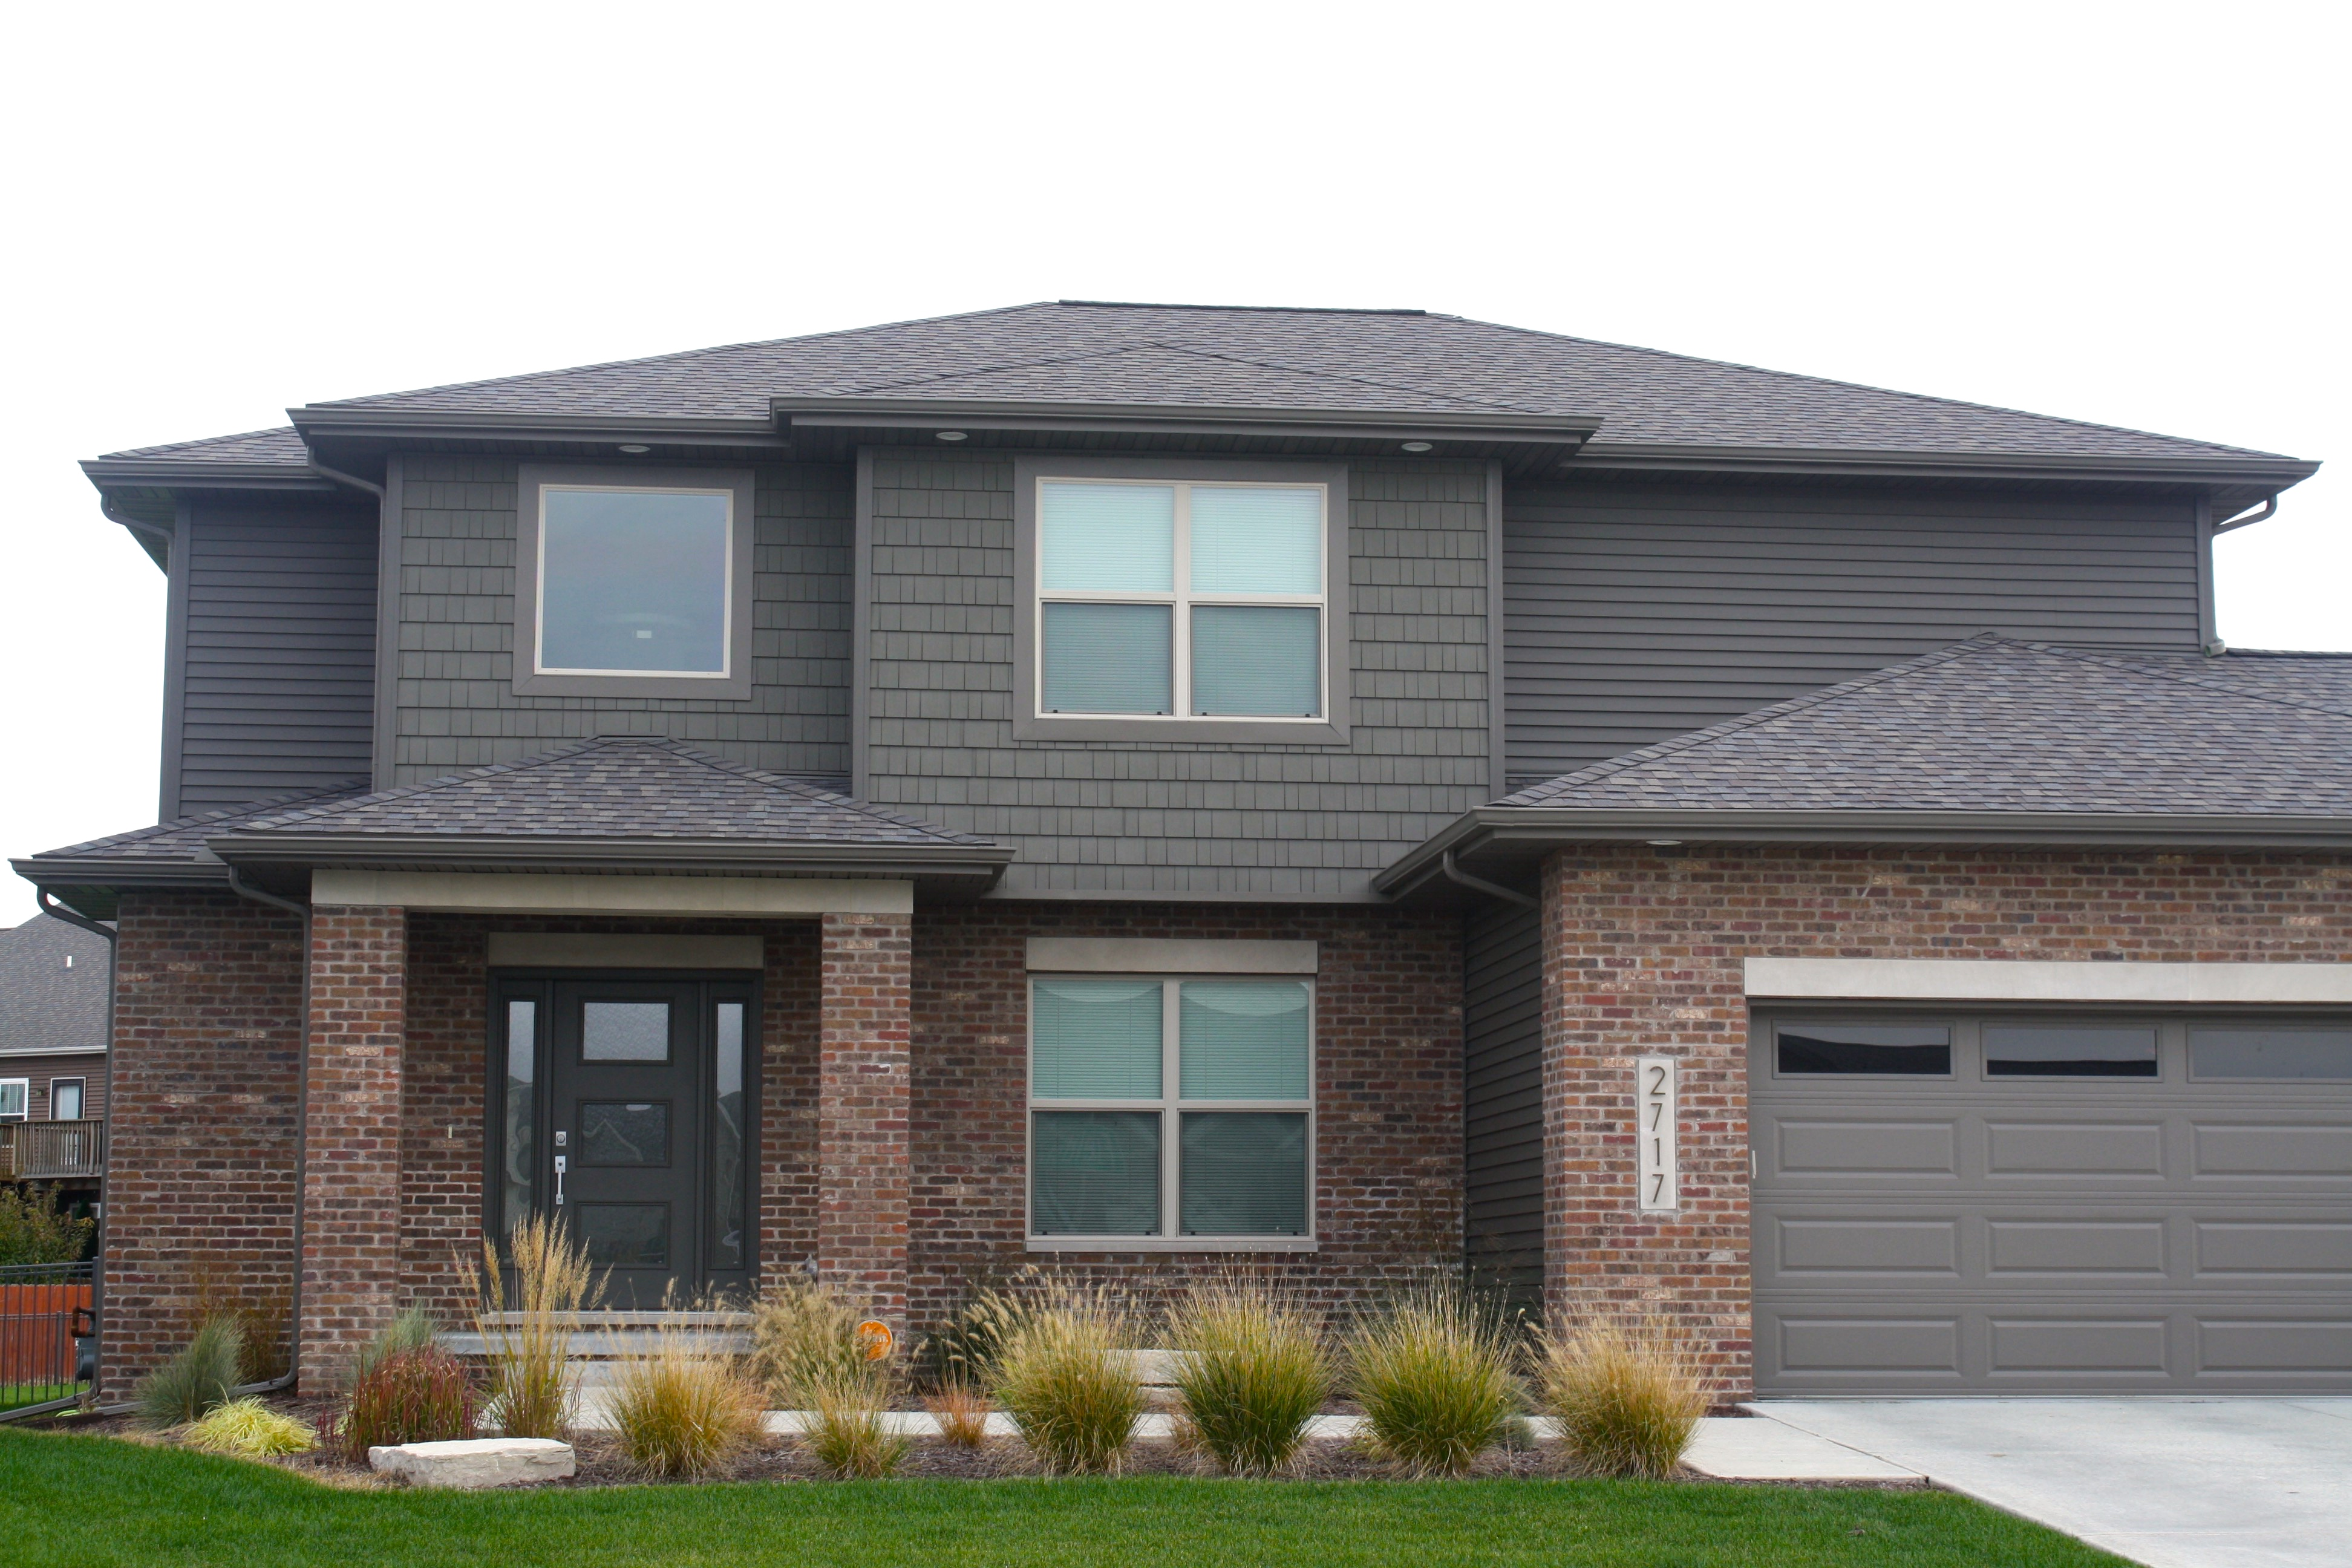 dark windows down fascia brown doors charcoal all gutter pipes pin garage roof and brick